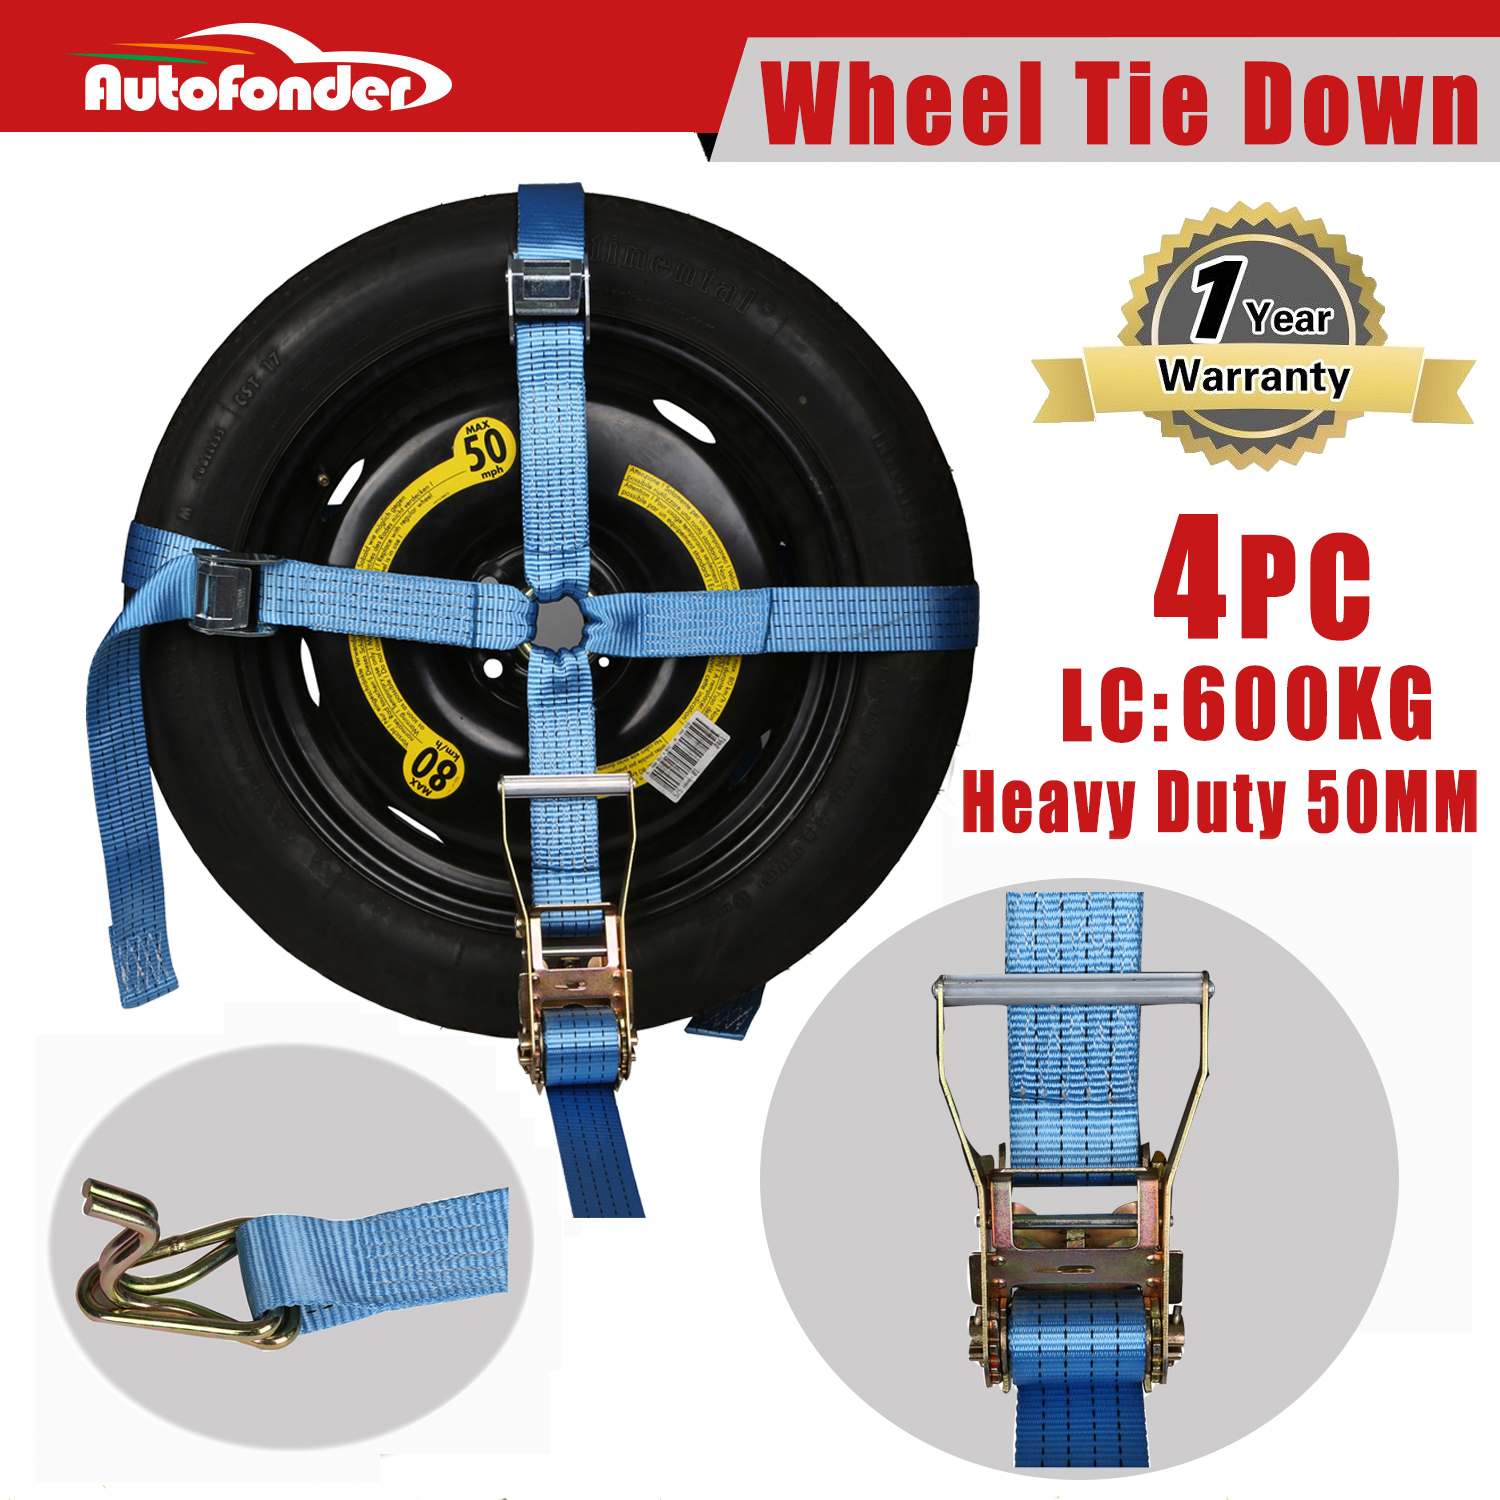 hight resolution of details about 4 wheel tie down strap car carrying ratchet tie down trailer wheel harness tow